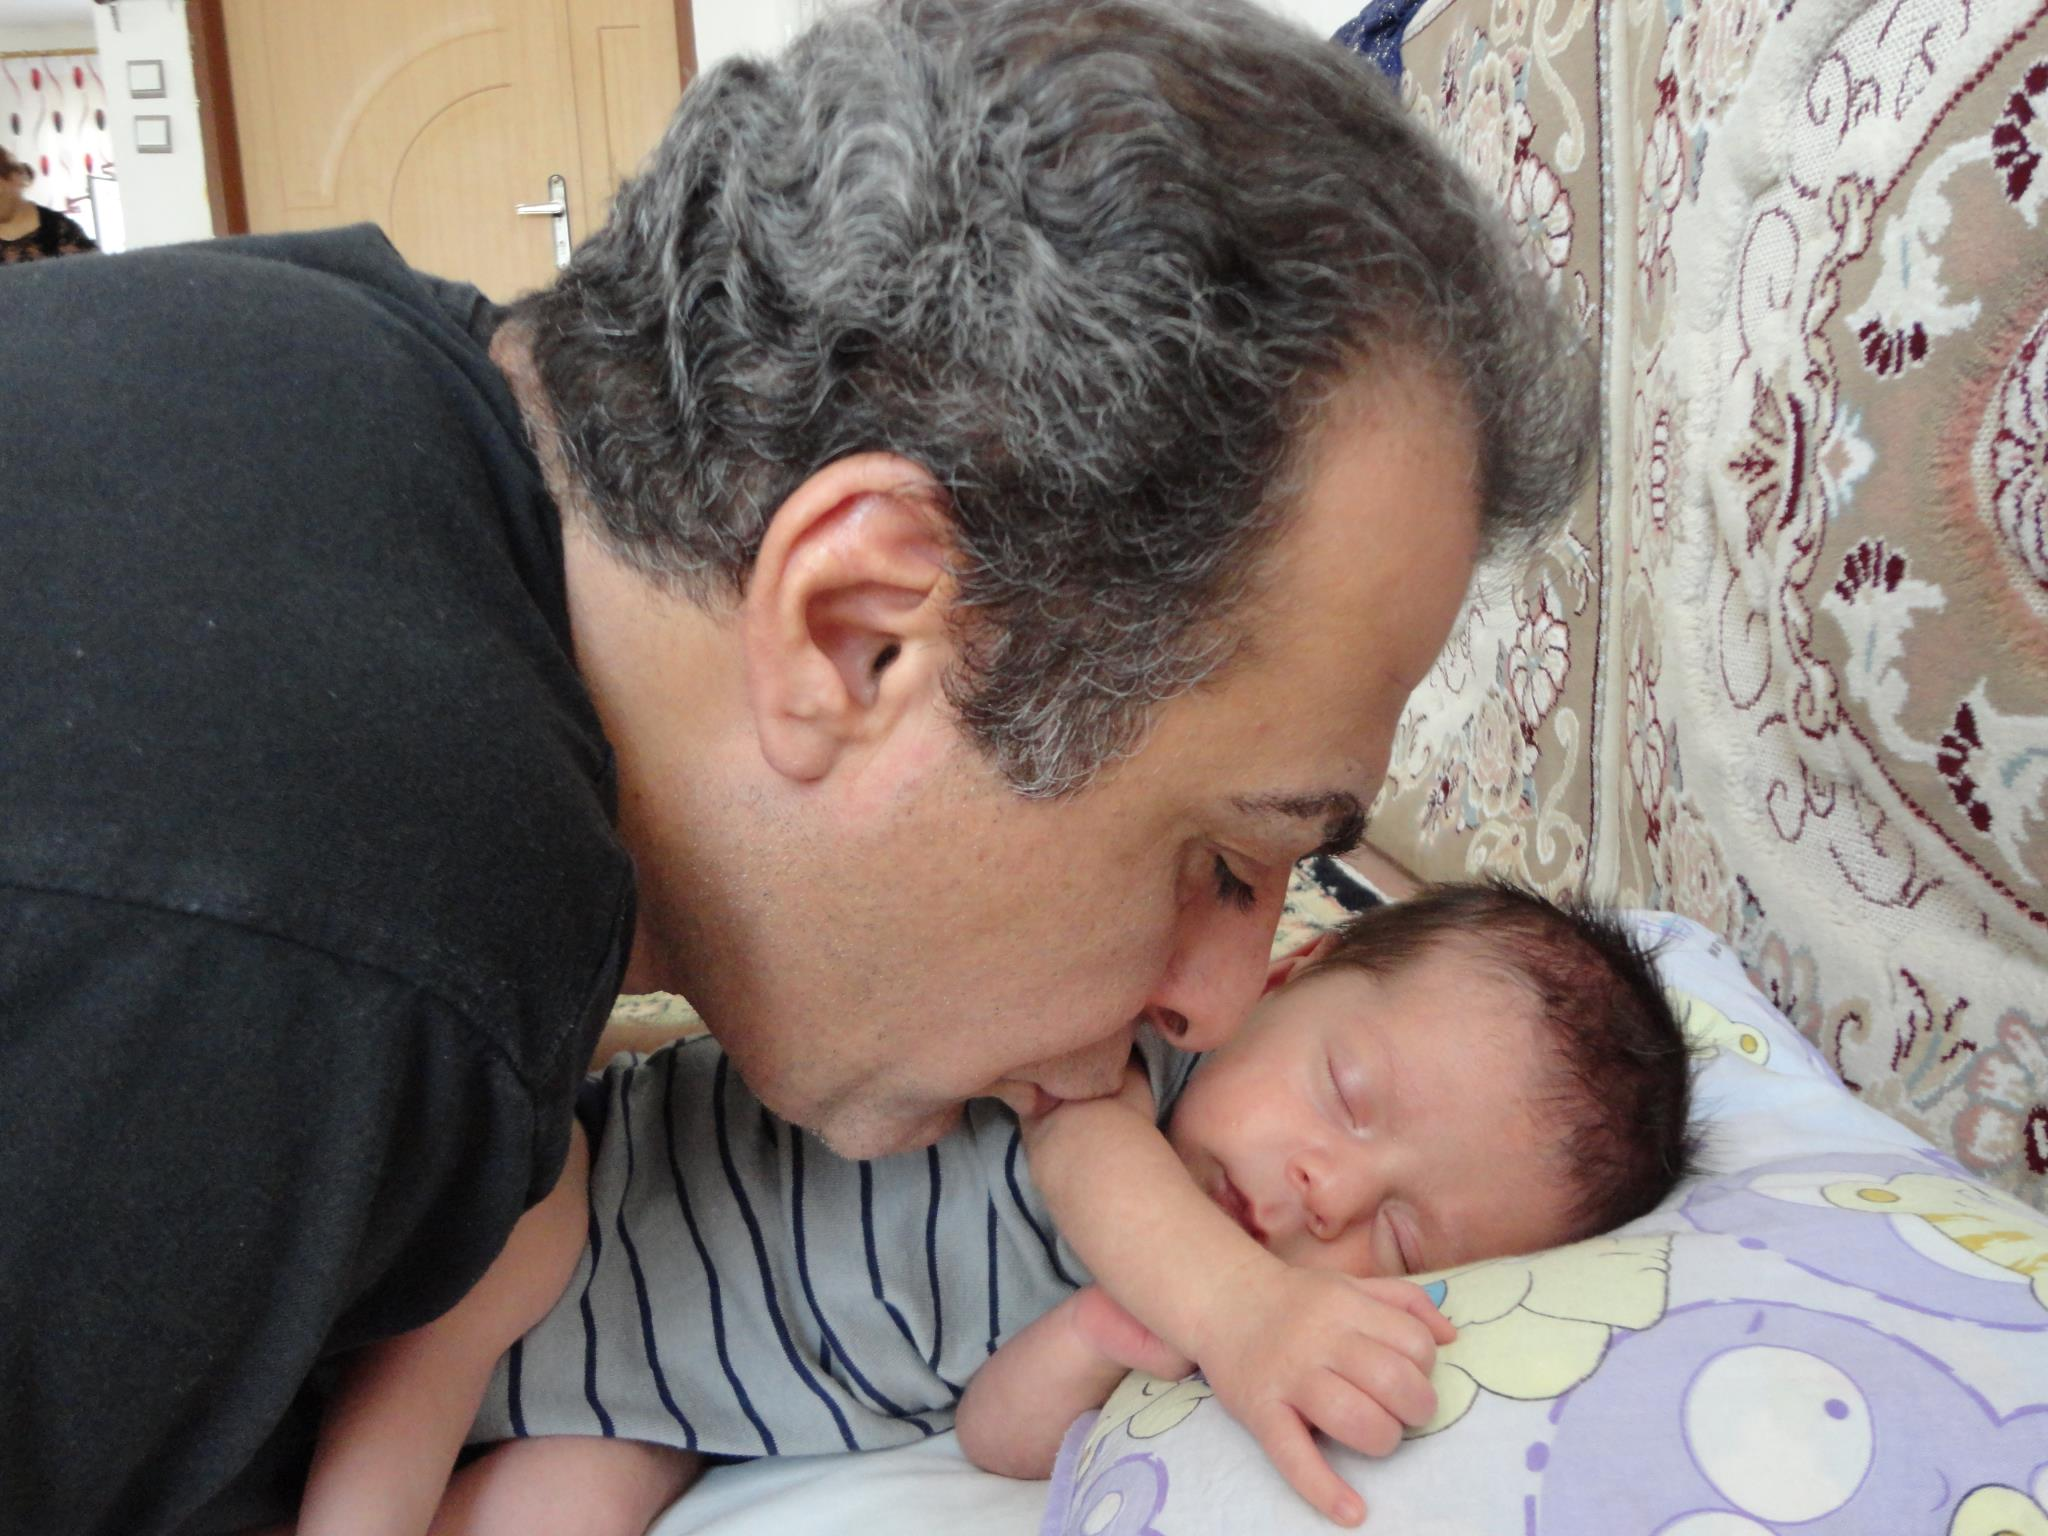 Behrouz with his newborn son, Harmang